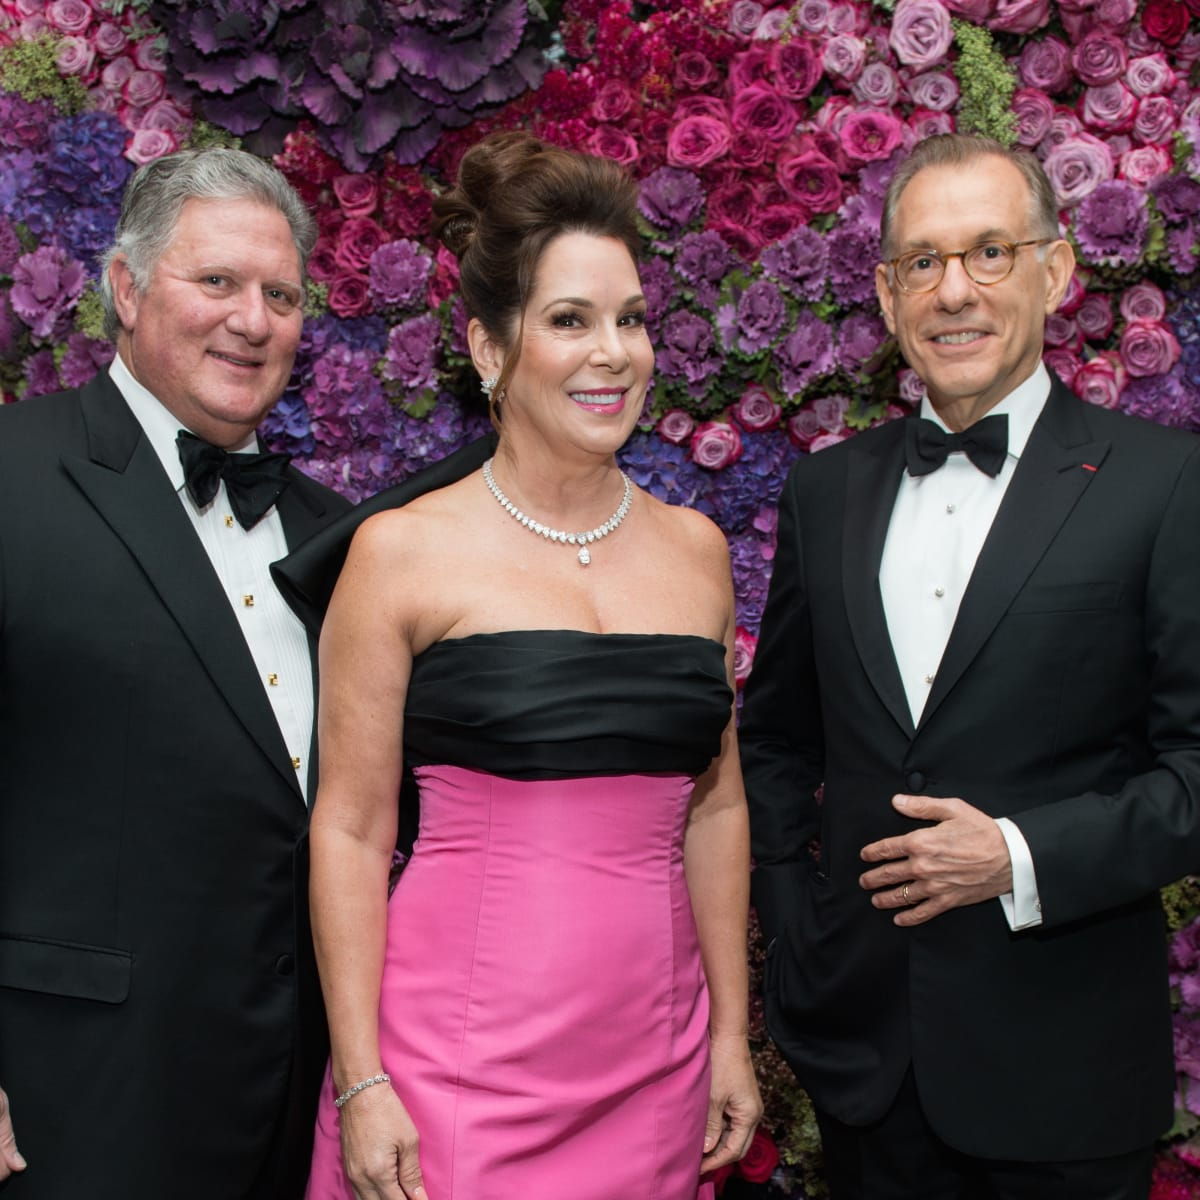 Jim Flores, Cherri Flores, Gary Tinterow at MFAH Grand Gala Ball